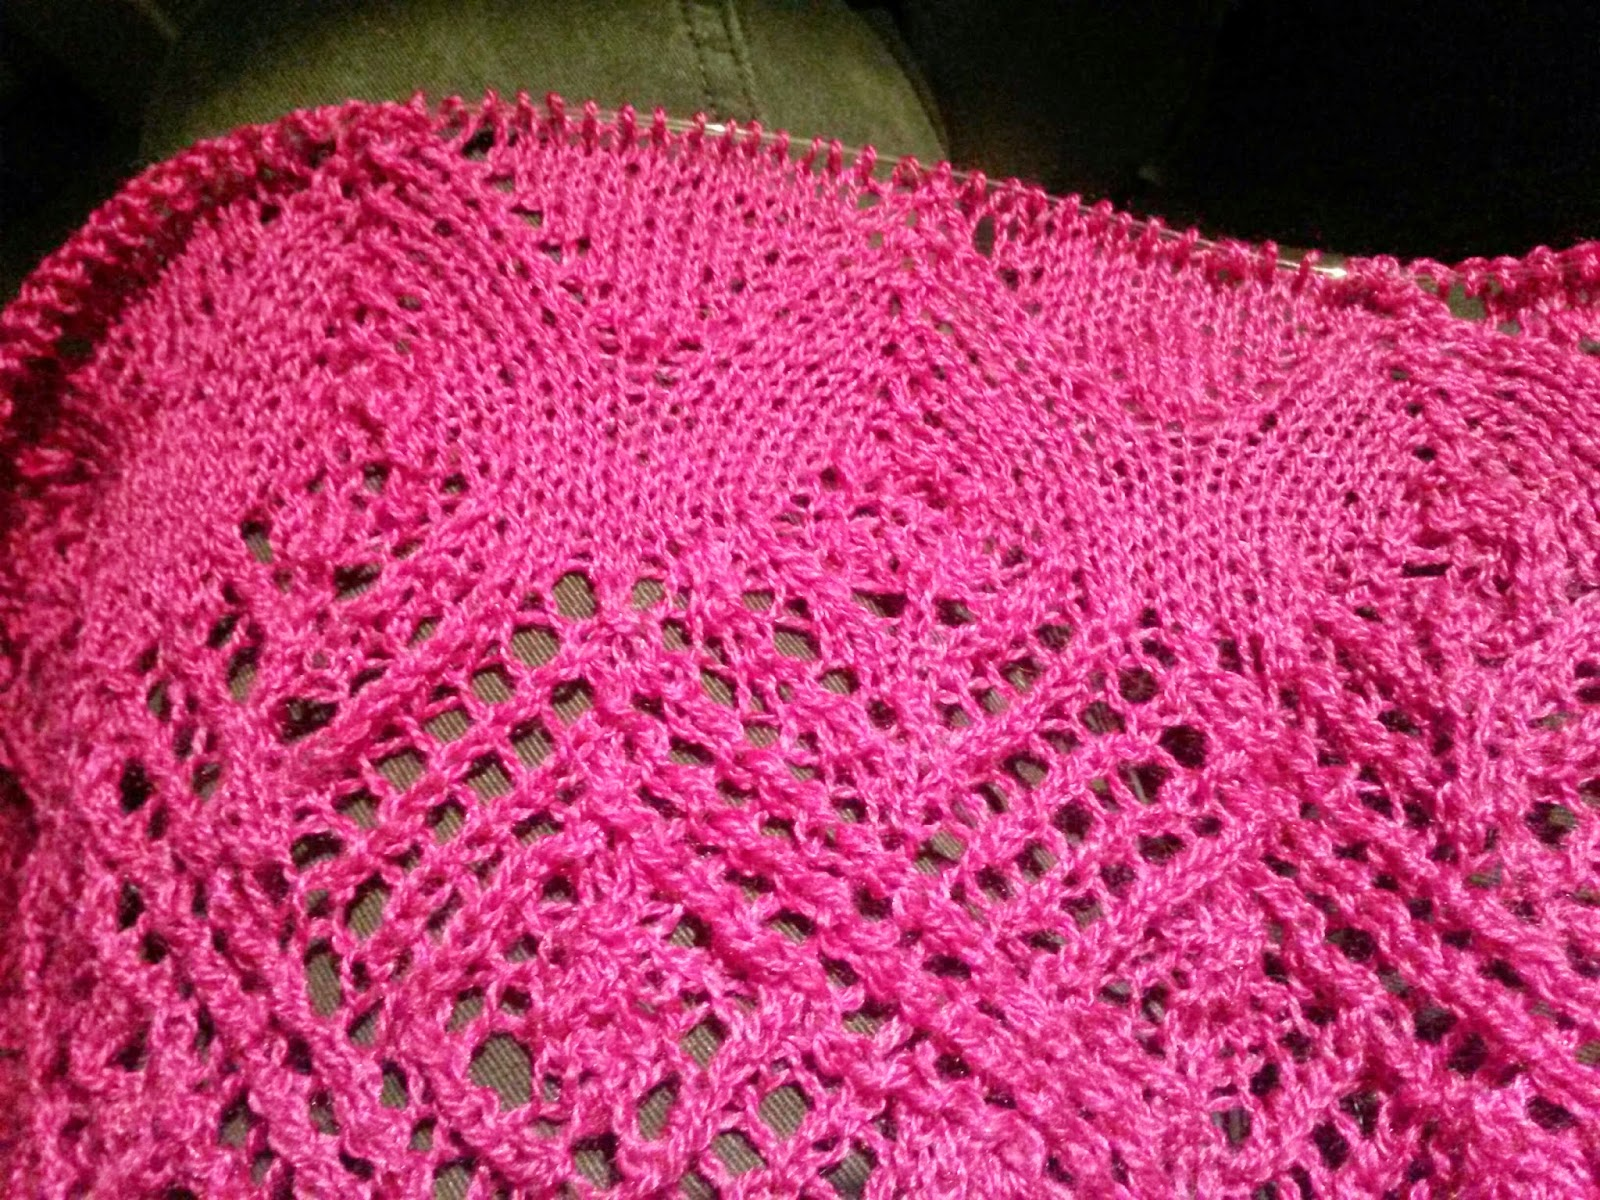 Knitting Picking Up Stitches On Neck : Frisian Frillies: New needles and a pink shawl - Nieuwe naalden en een roze s...